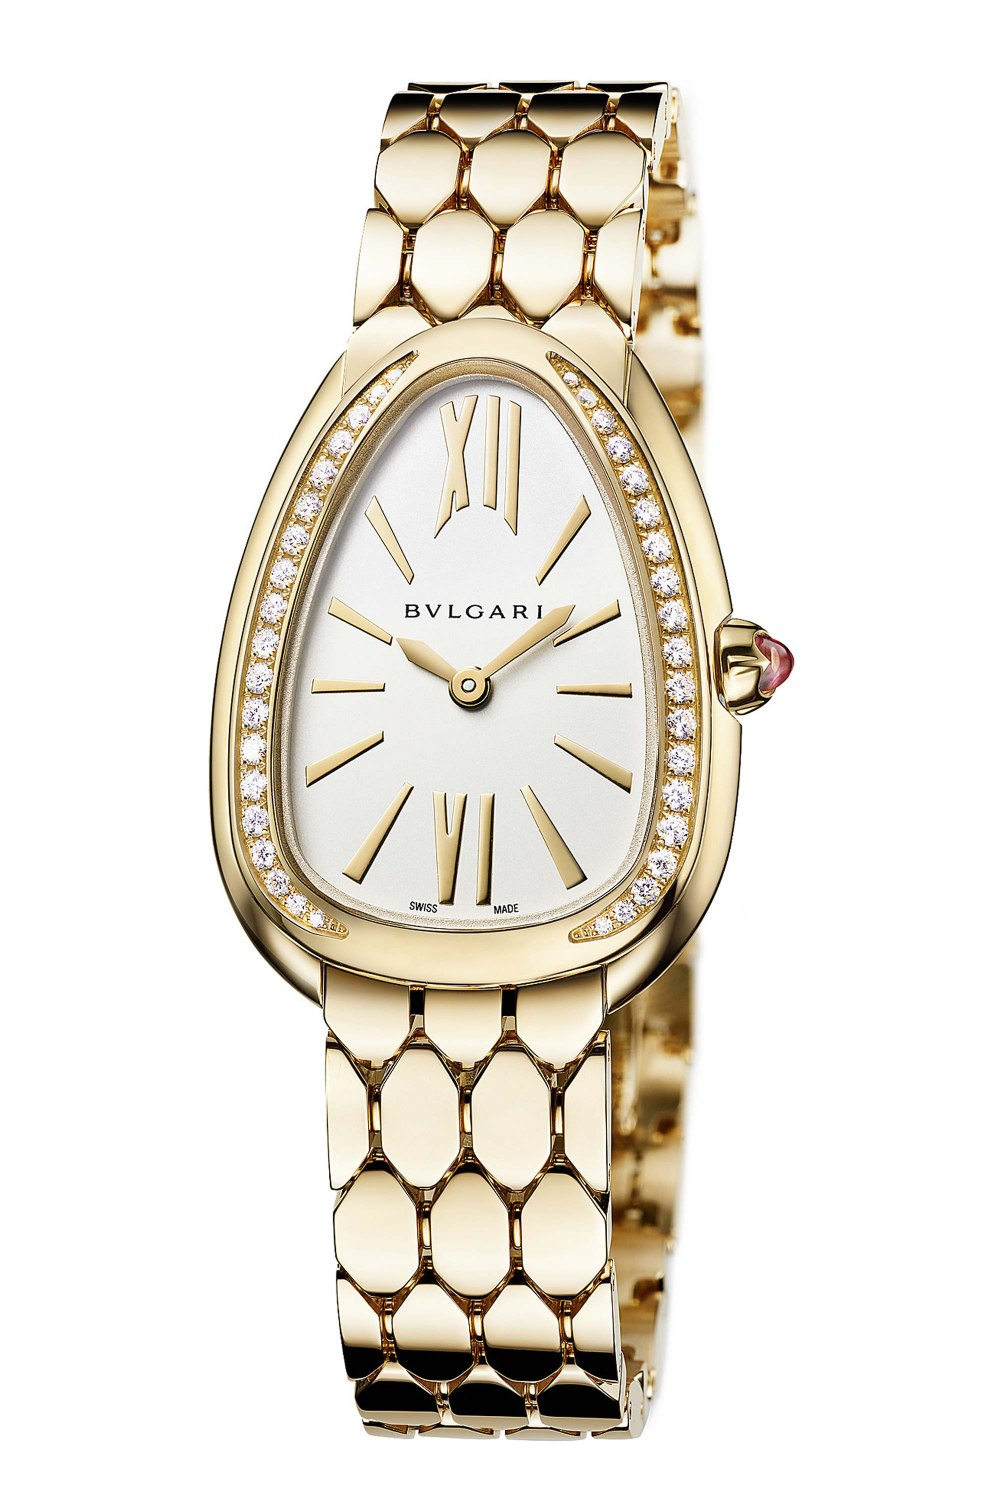 BULGARI Serpenti Seduttori Yellow Gold Diamonds 103147